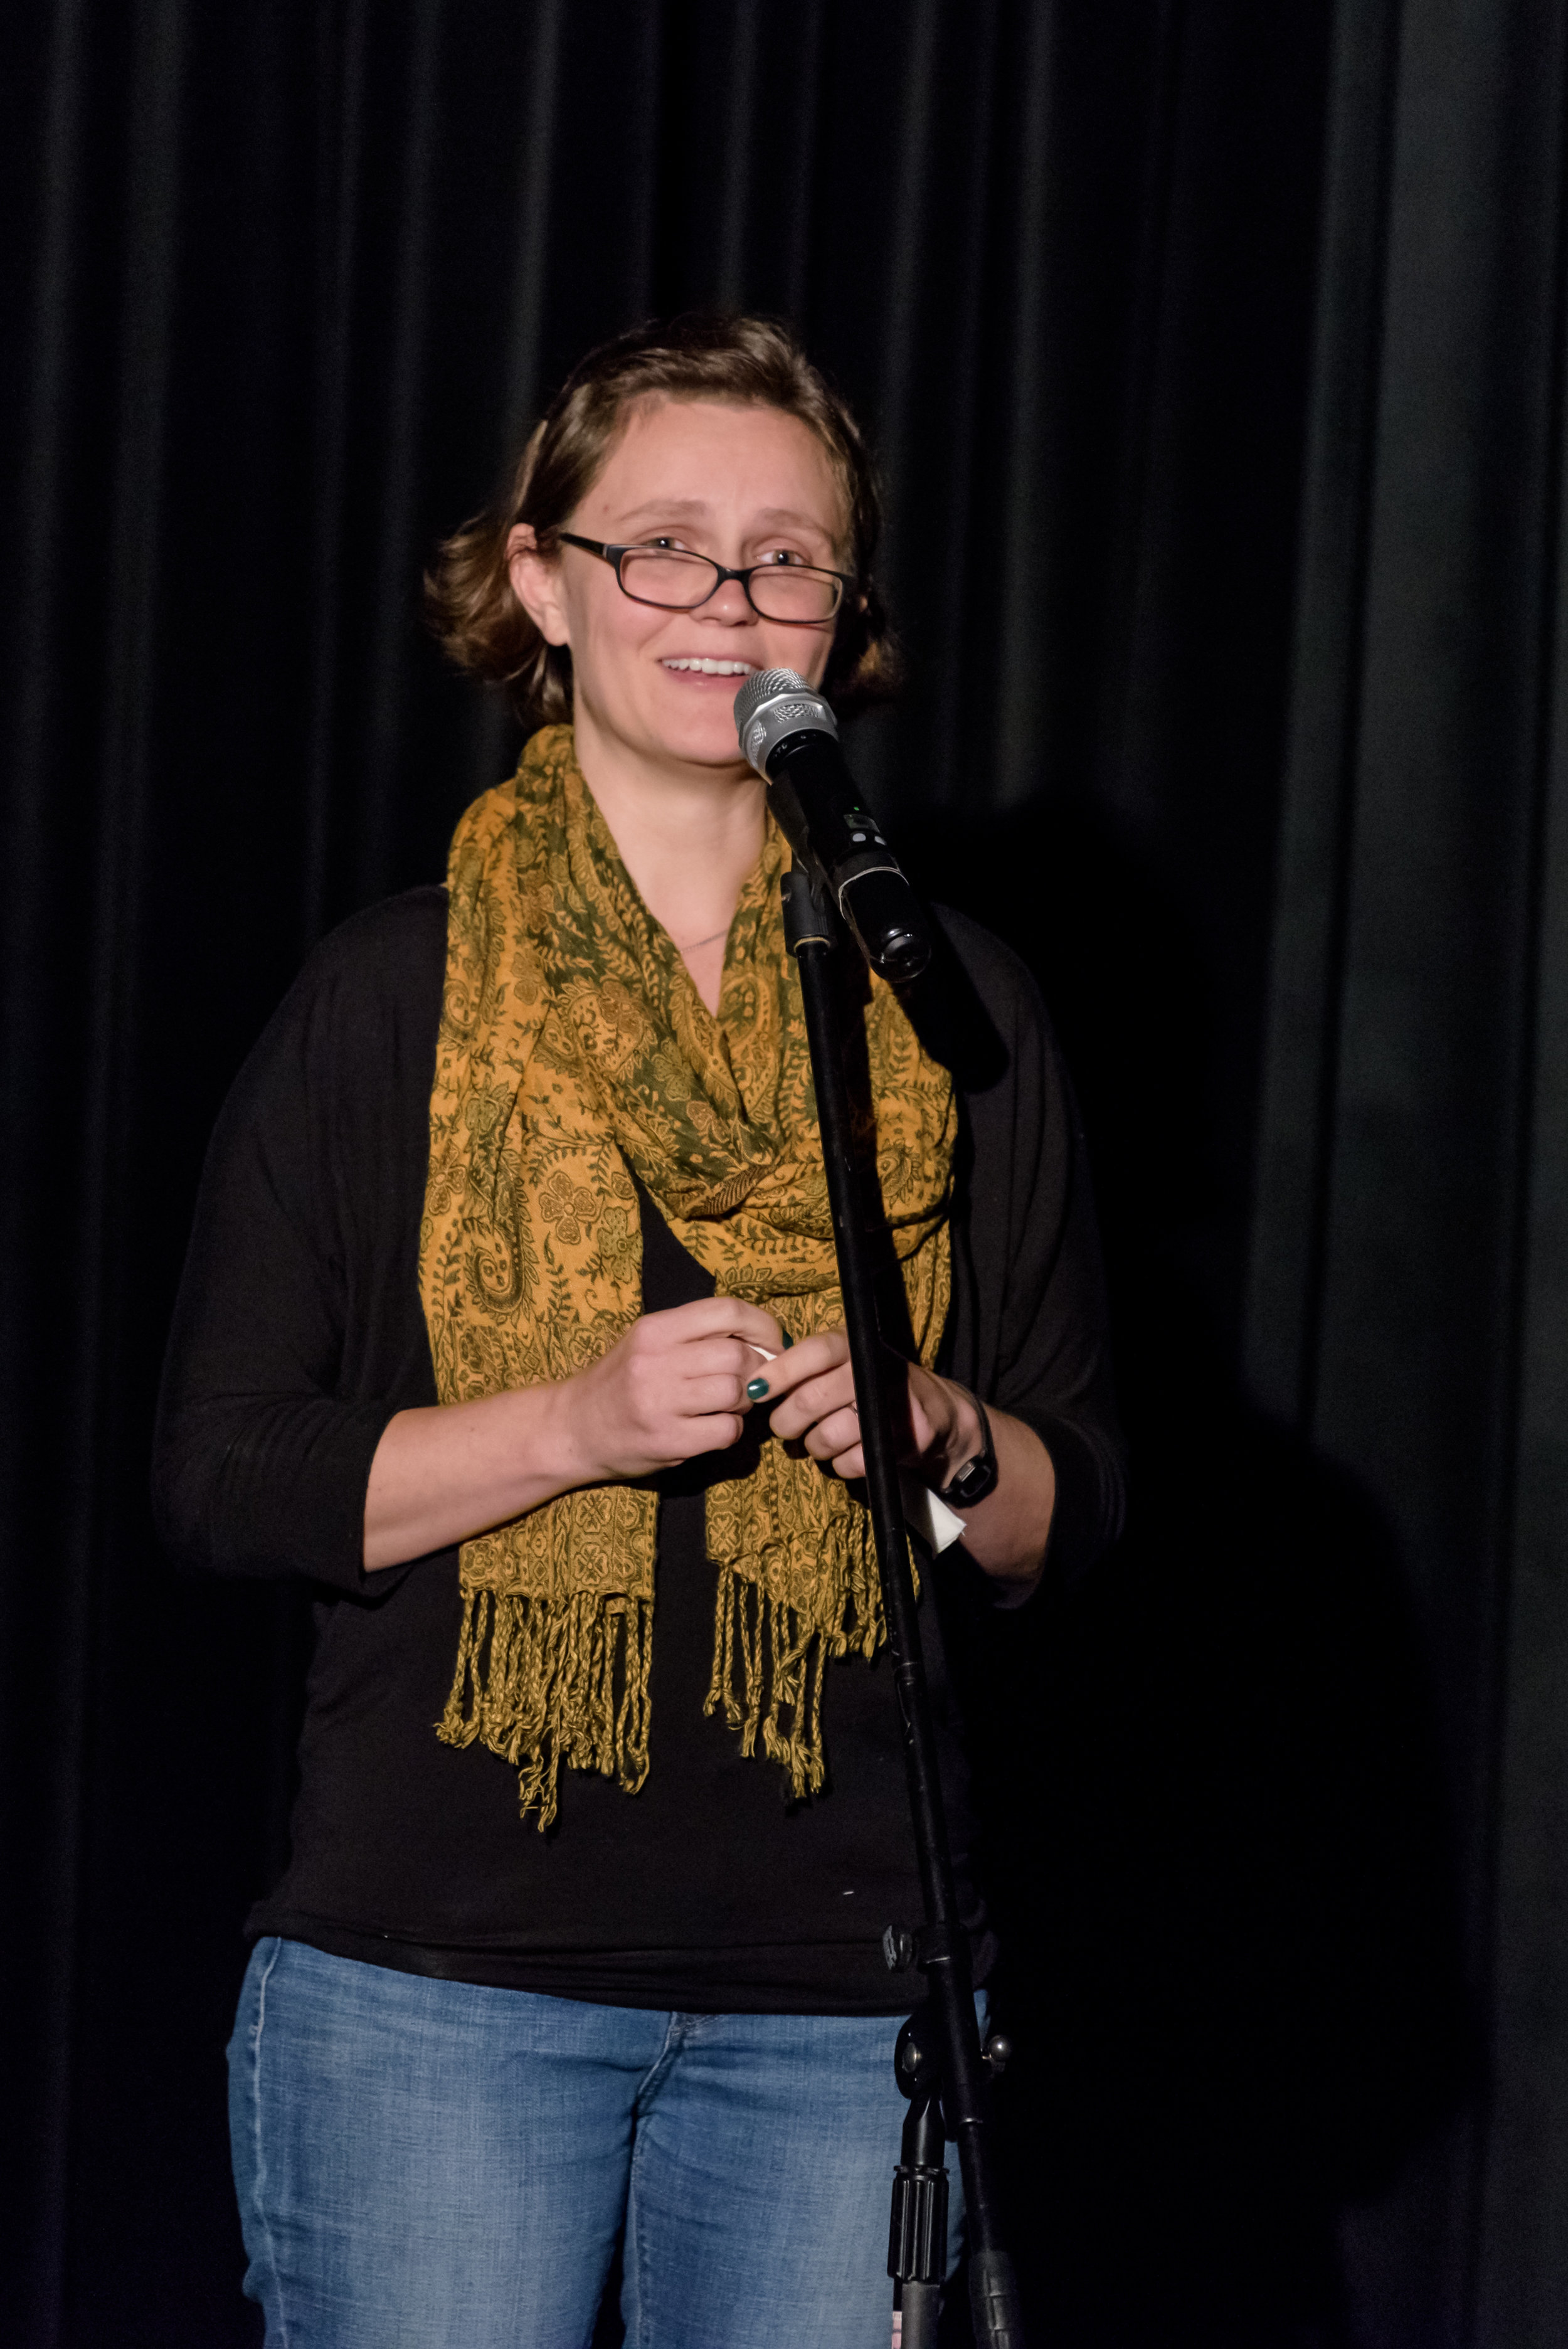 Sarah Hird shares her story on the Story Collider stage at Real Art Ways in Hartford, CT in October 2018. Photo by Nick Caito.